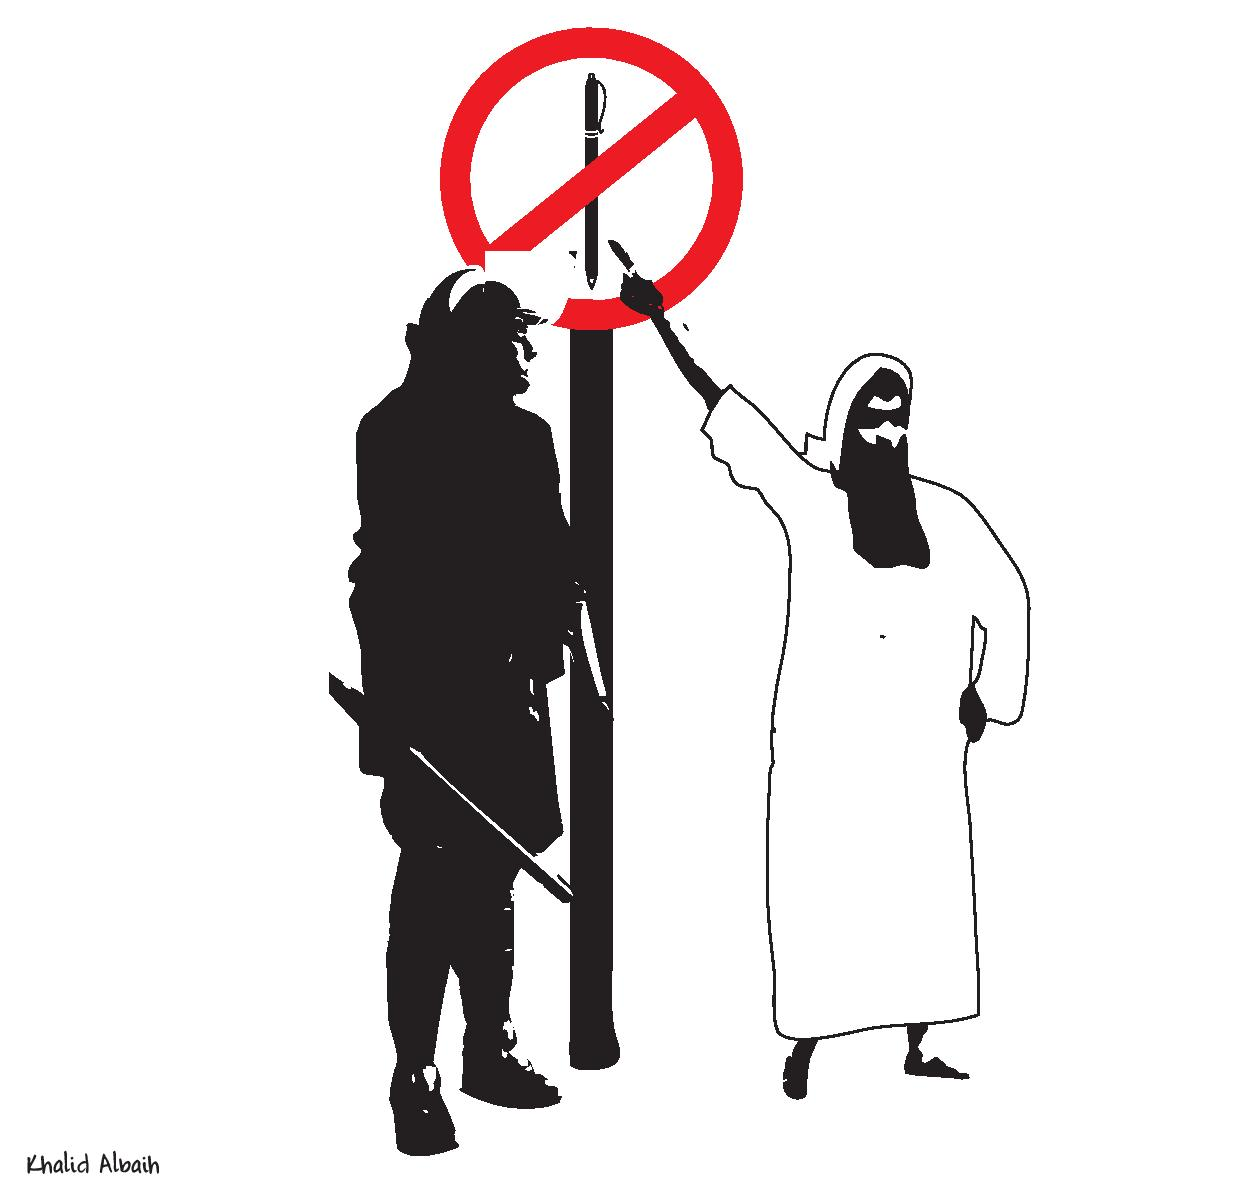 L'art de la satire de Khalid Albaih – The art of satire by Khalid Albaih